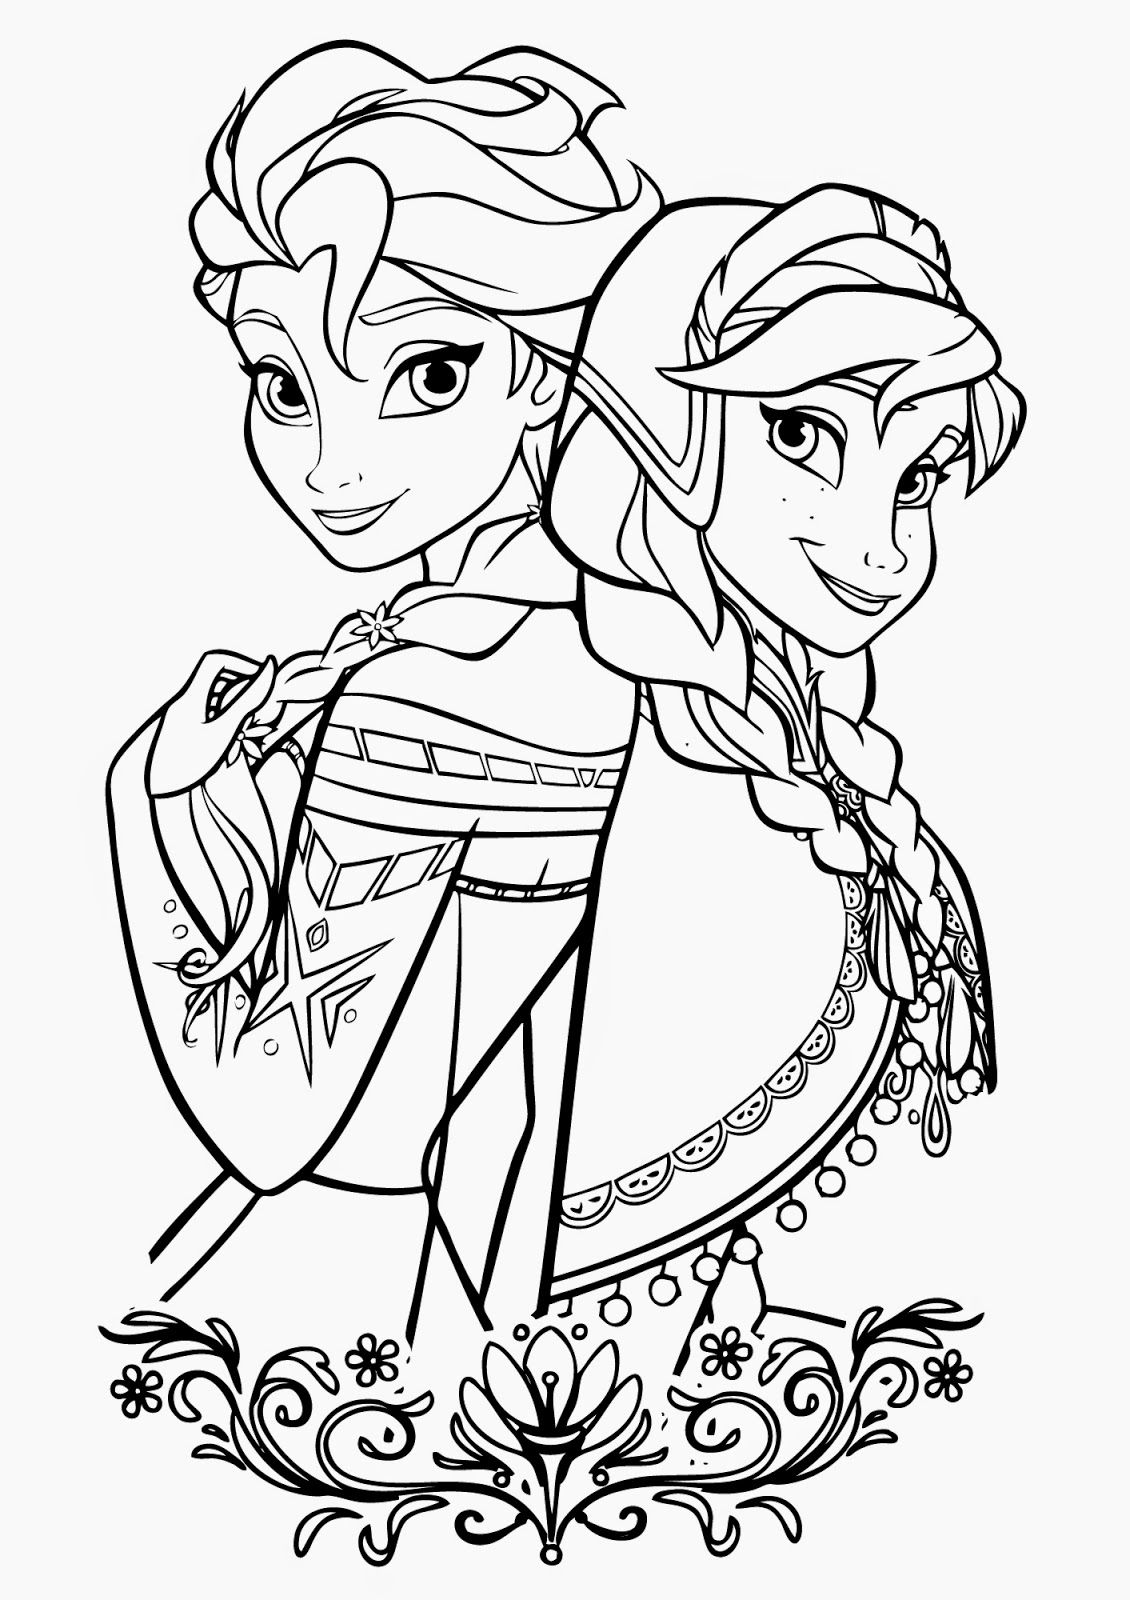 Frozen Coloring Sheets Disney Pages For Adults Books Printable Olaf Anna